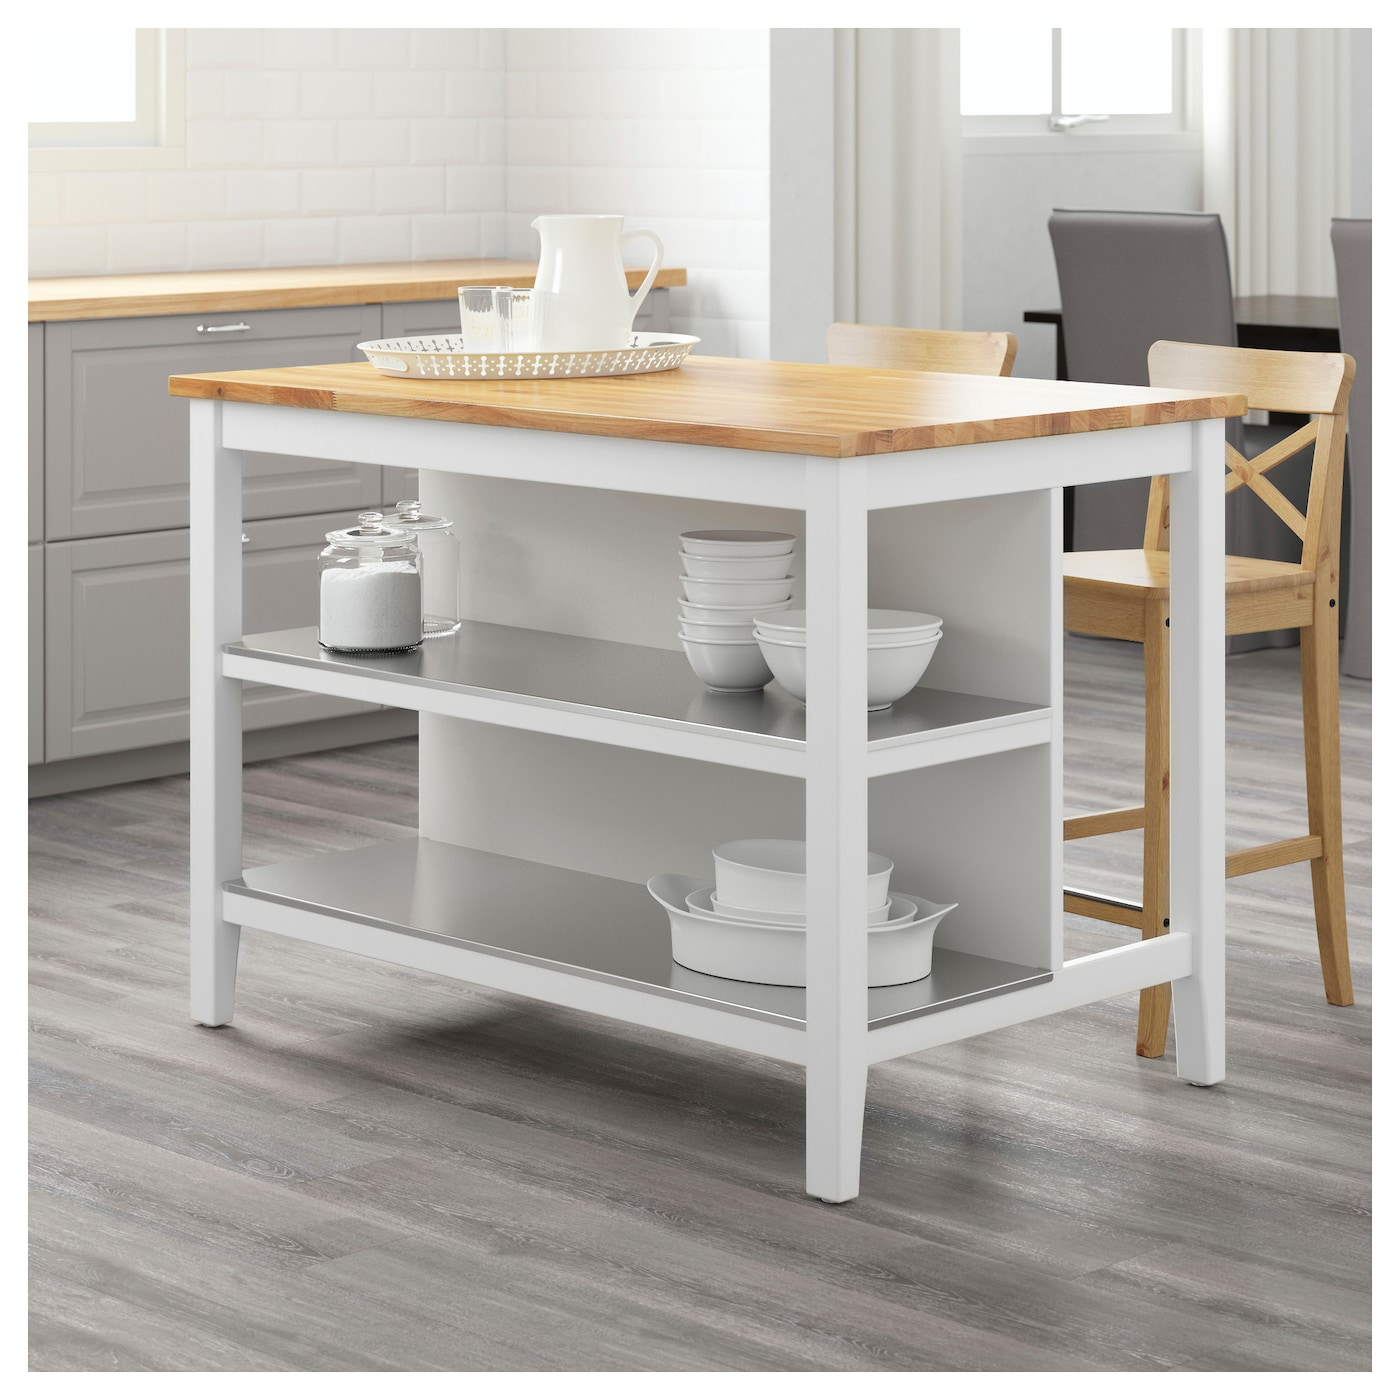 kitchen island ikea stenstorp kitchen island white oak 126 x 79 cm ikea 1927